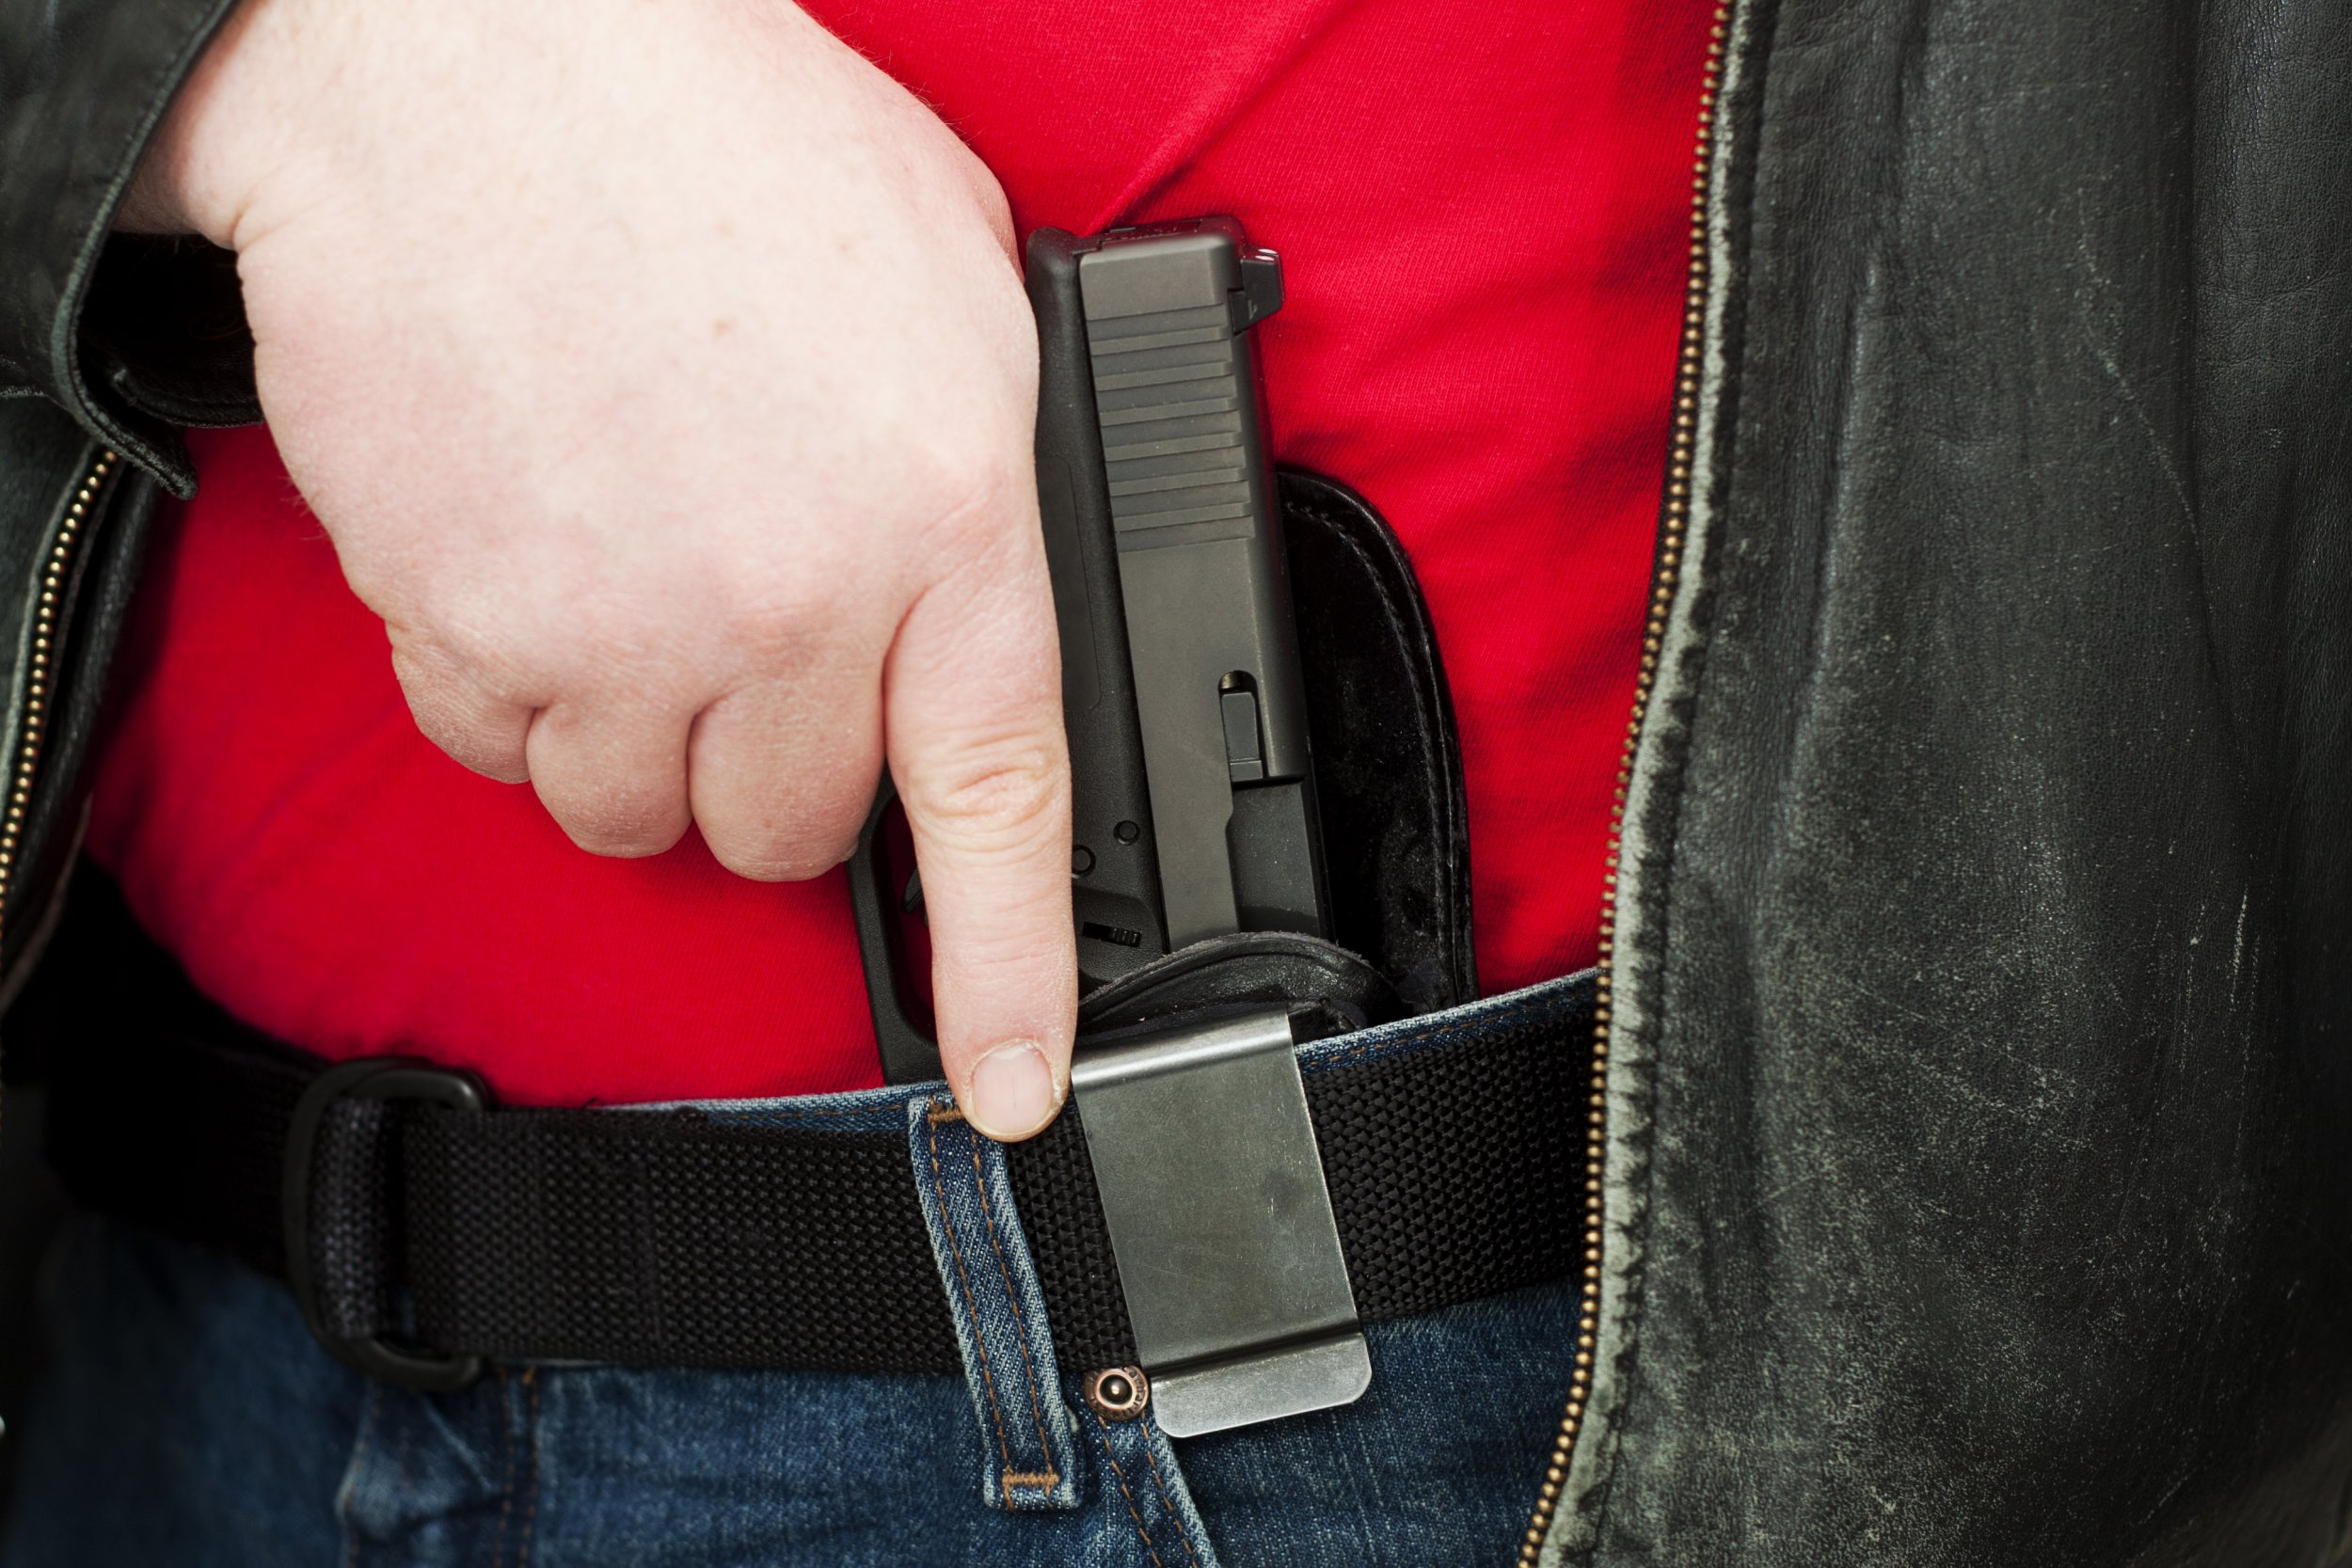 Concealed Carry Firearm Drawn